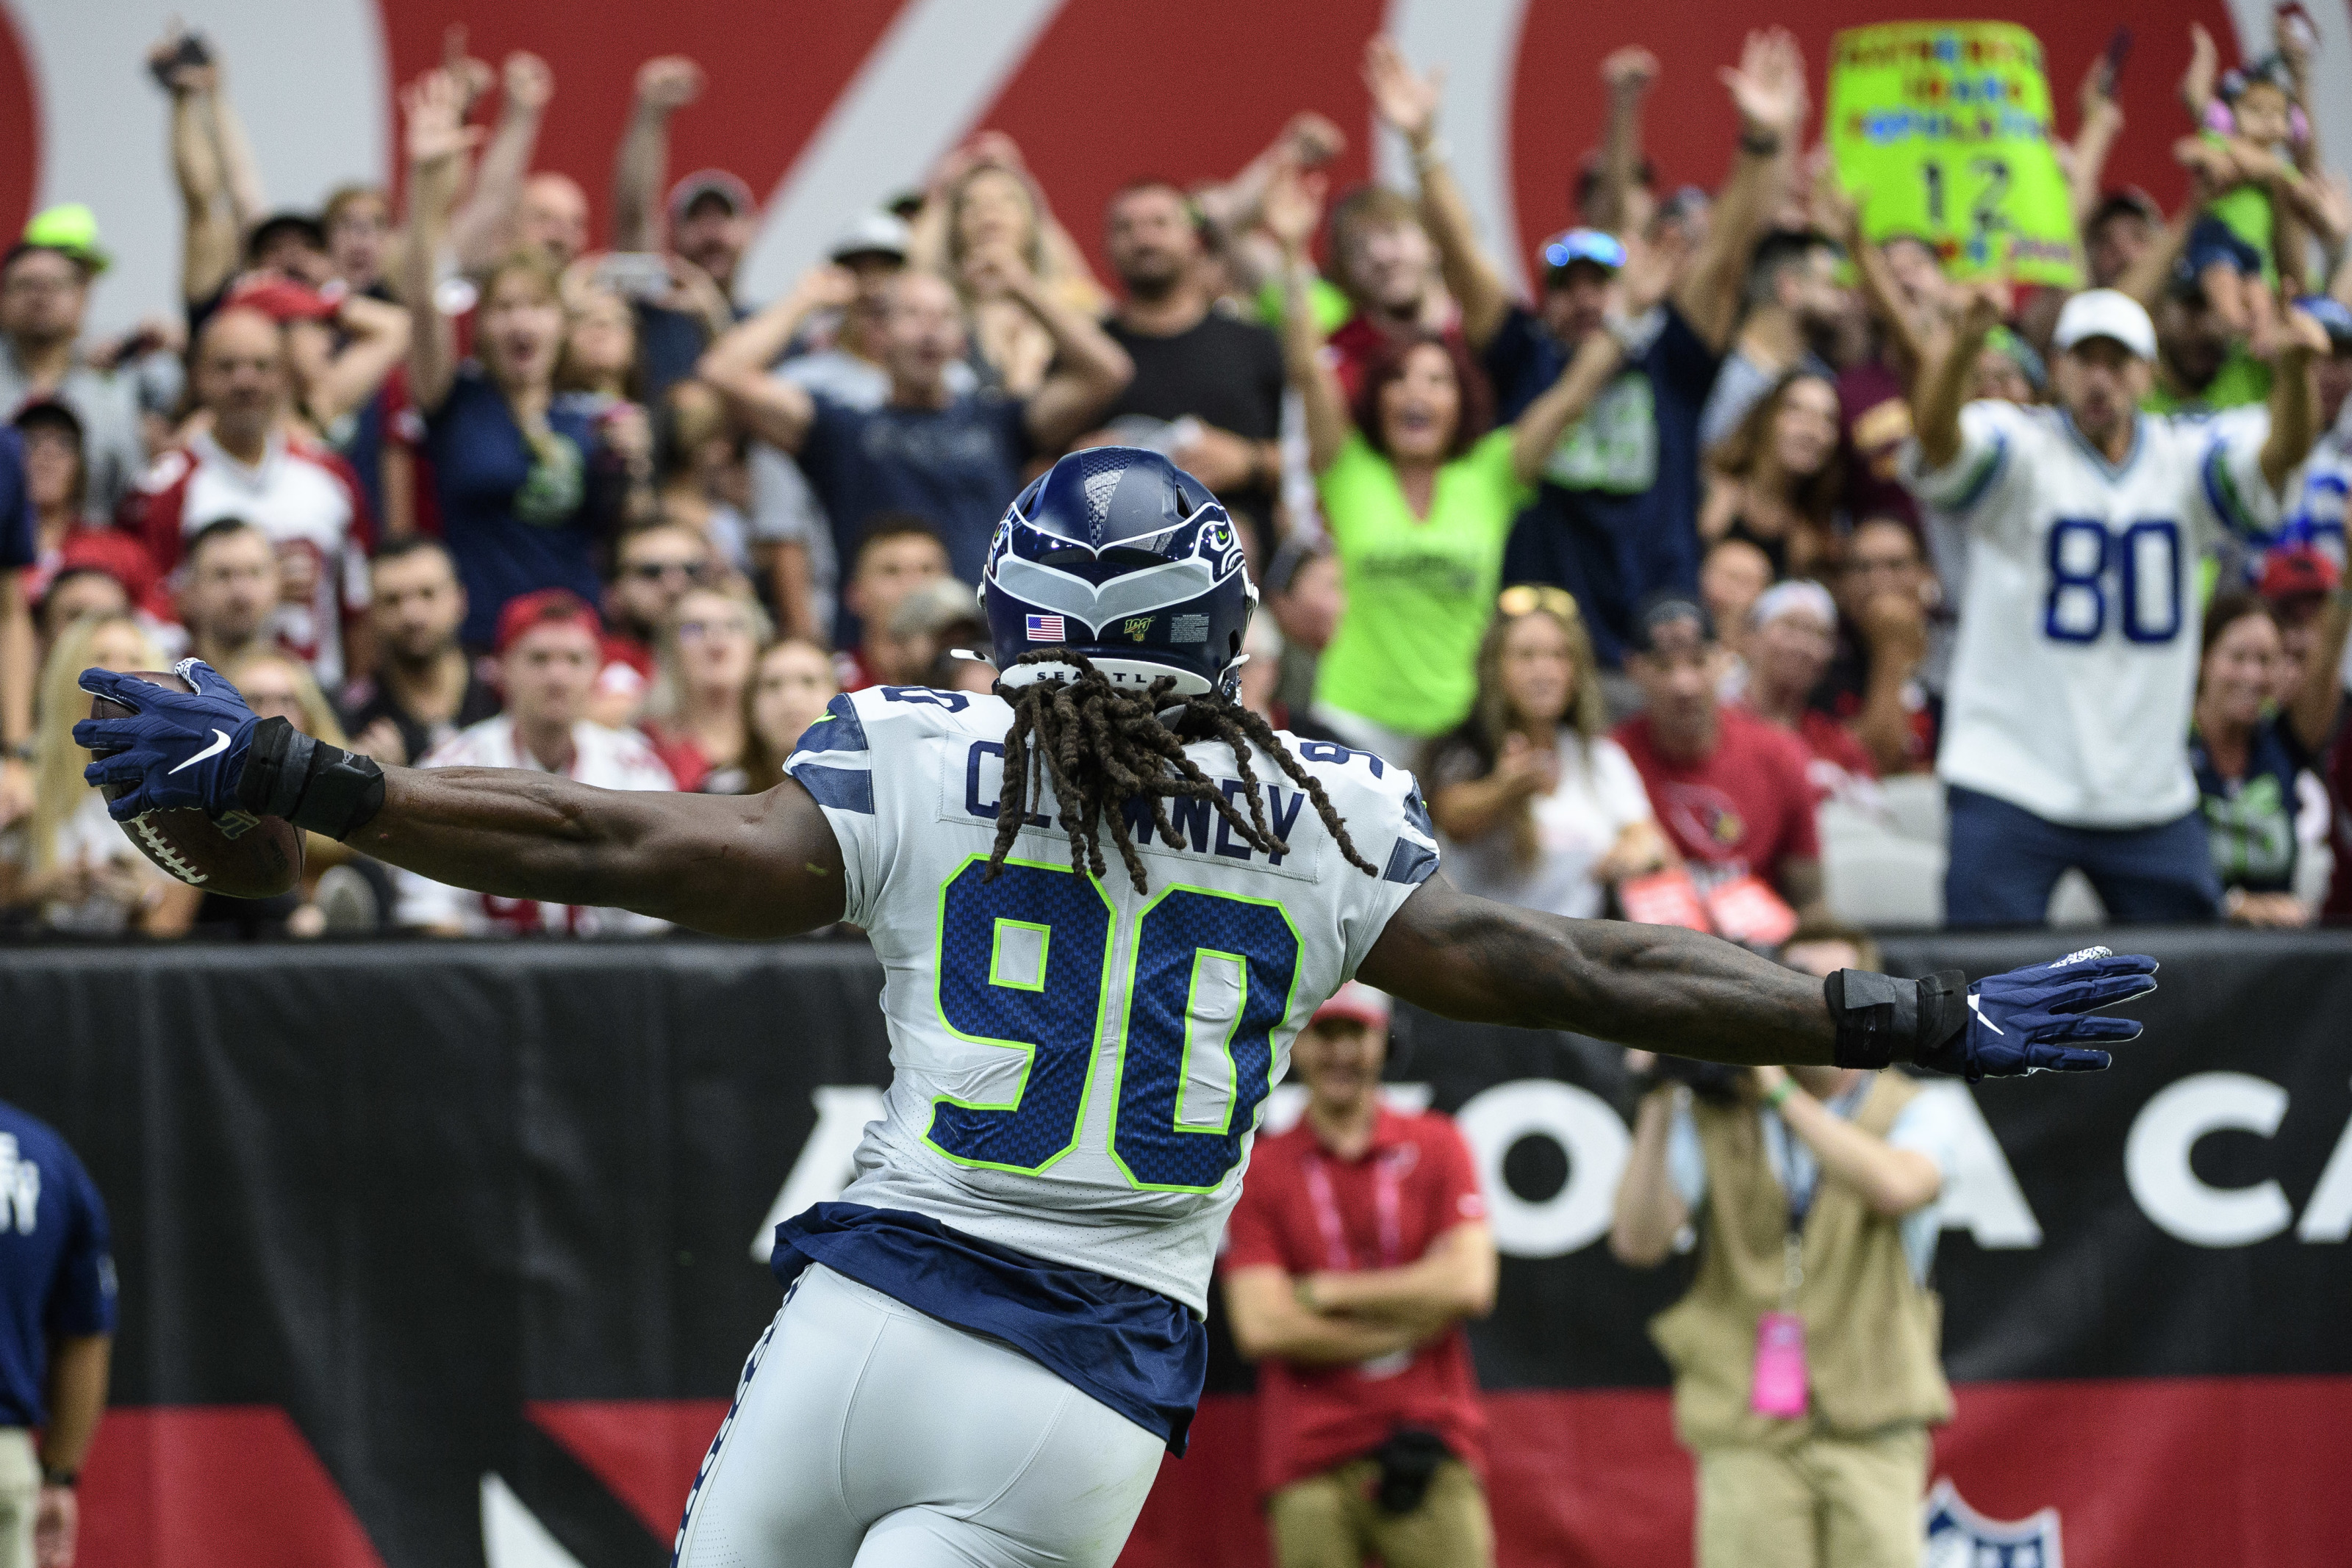 The Cleveland Browns adding Jadeveon Clowney would make sense